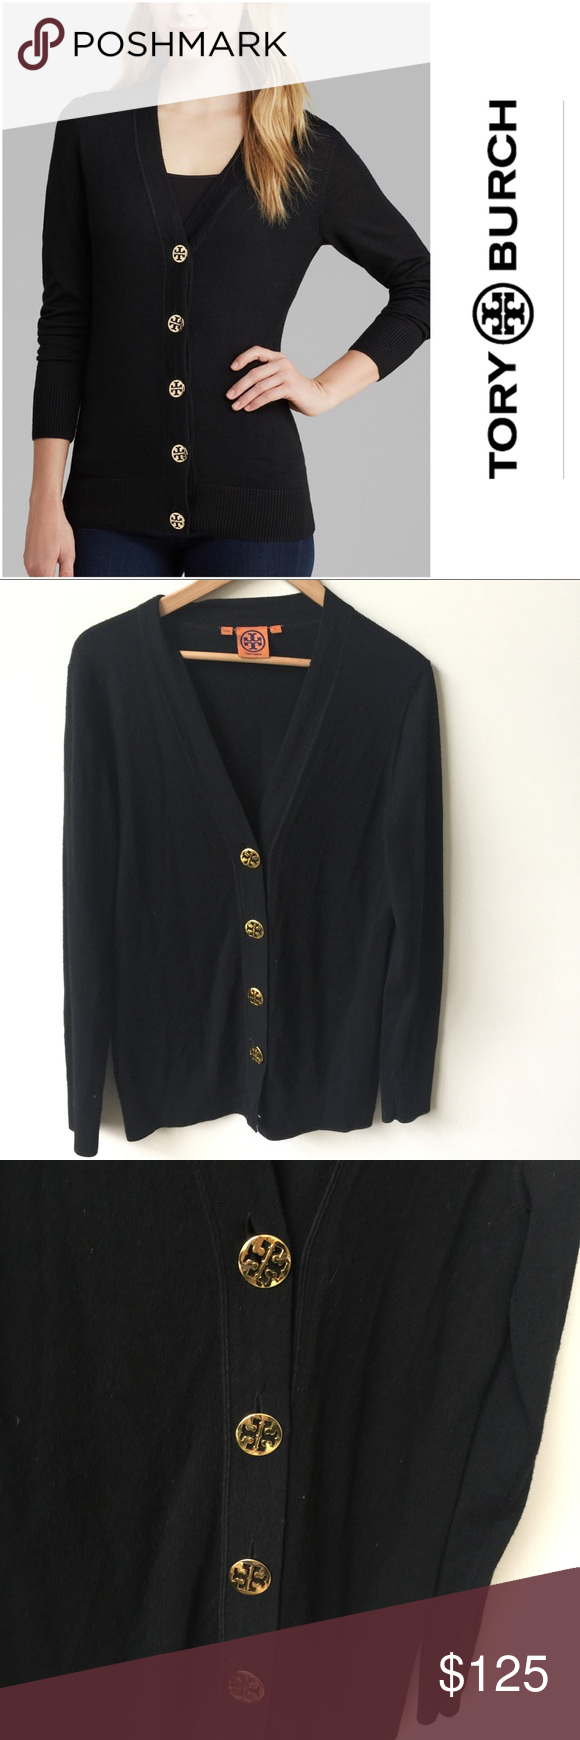 Tory Burch | Simone Merino black cardigan | large | Arm pits and ...